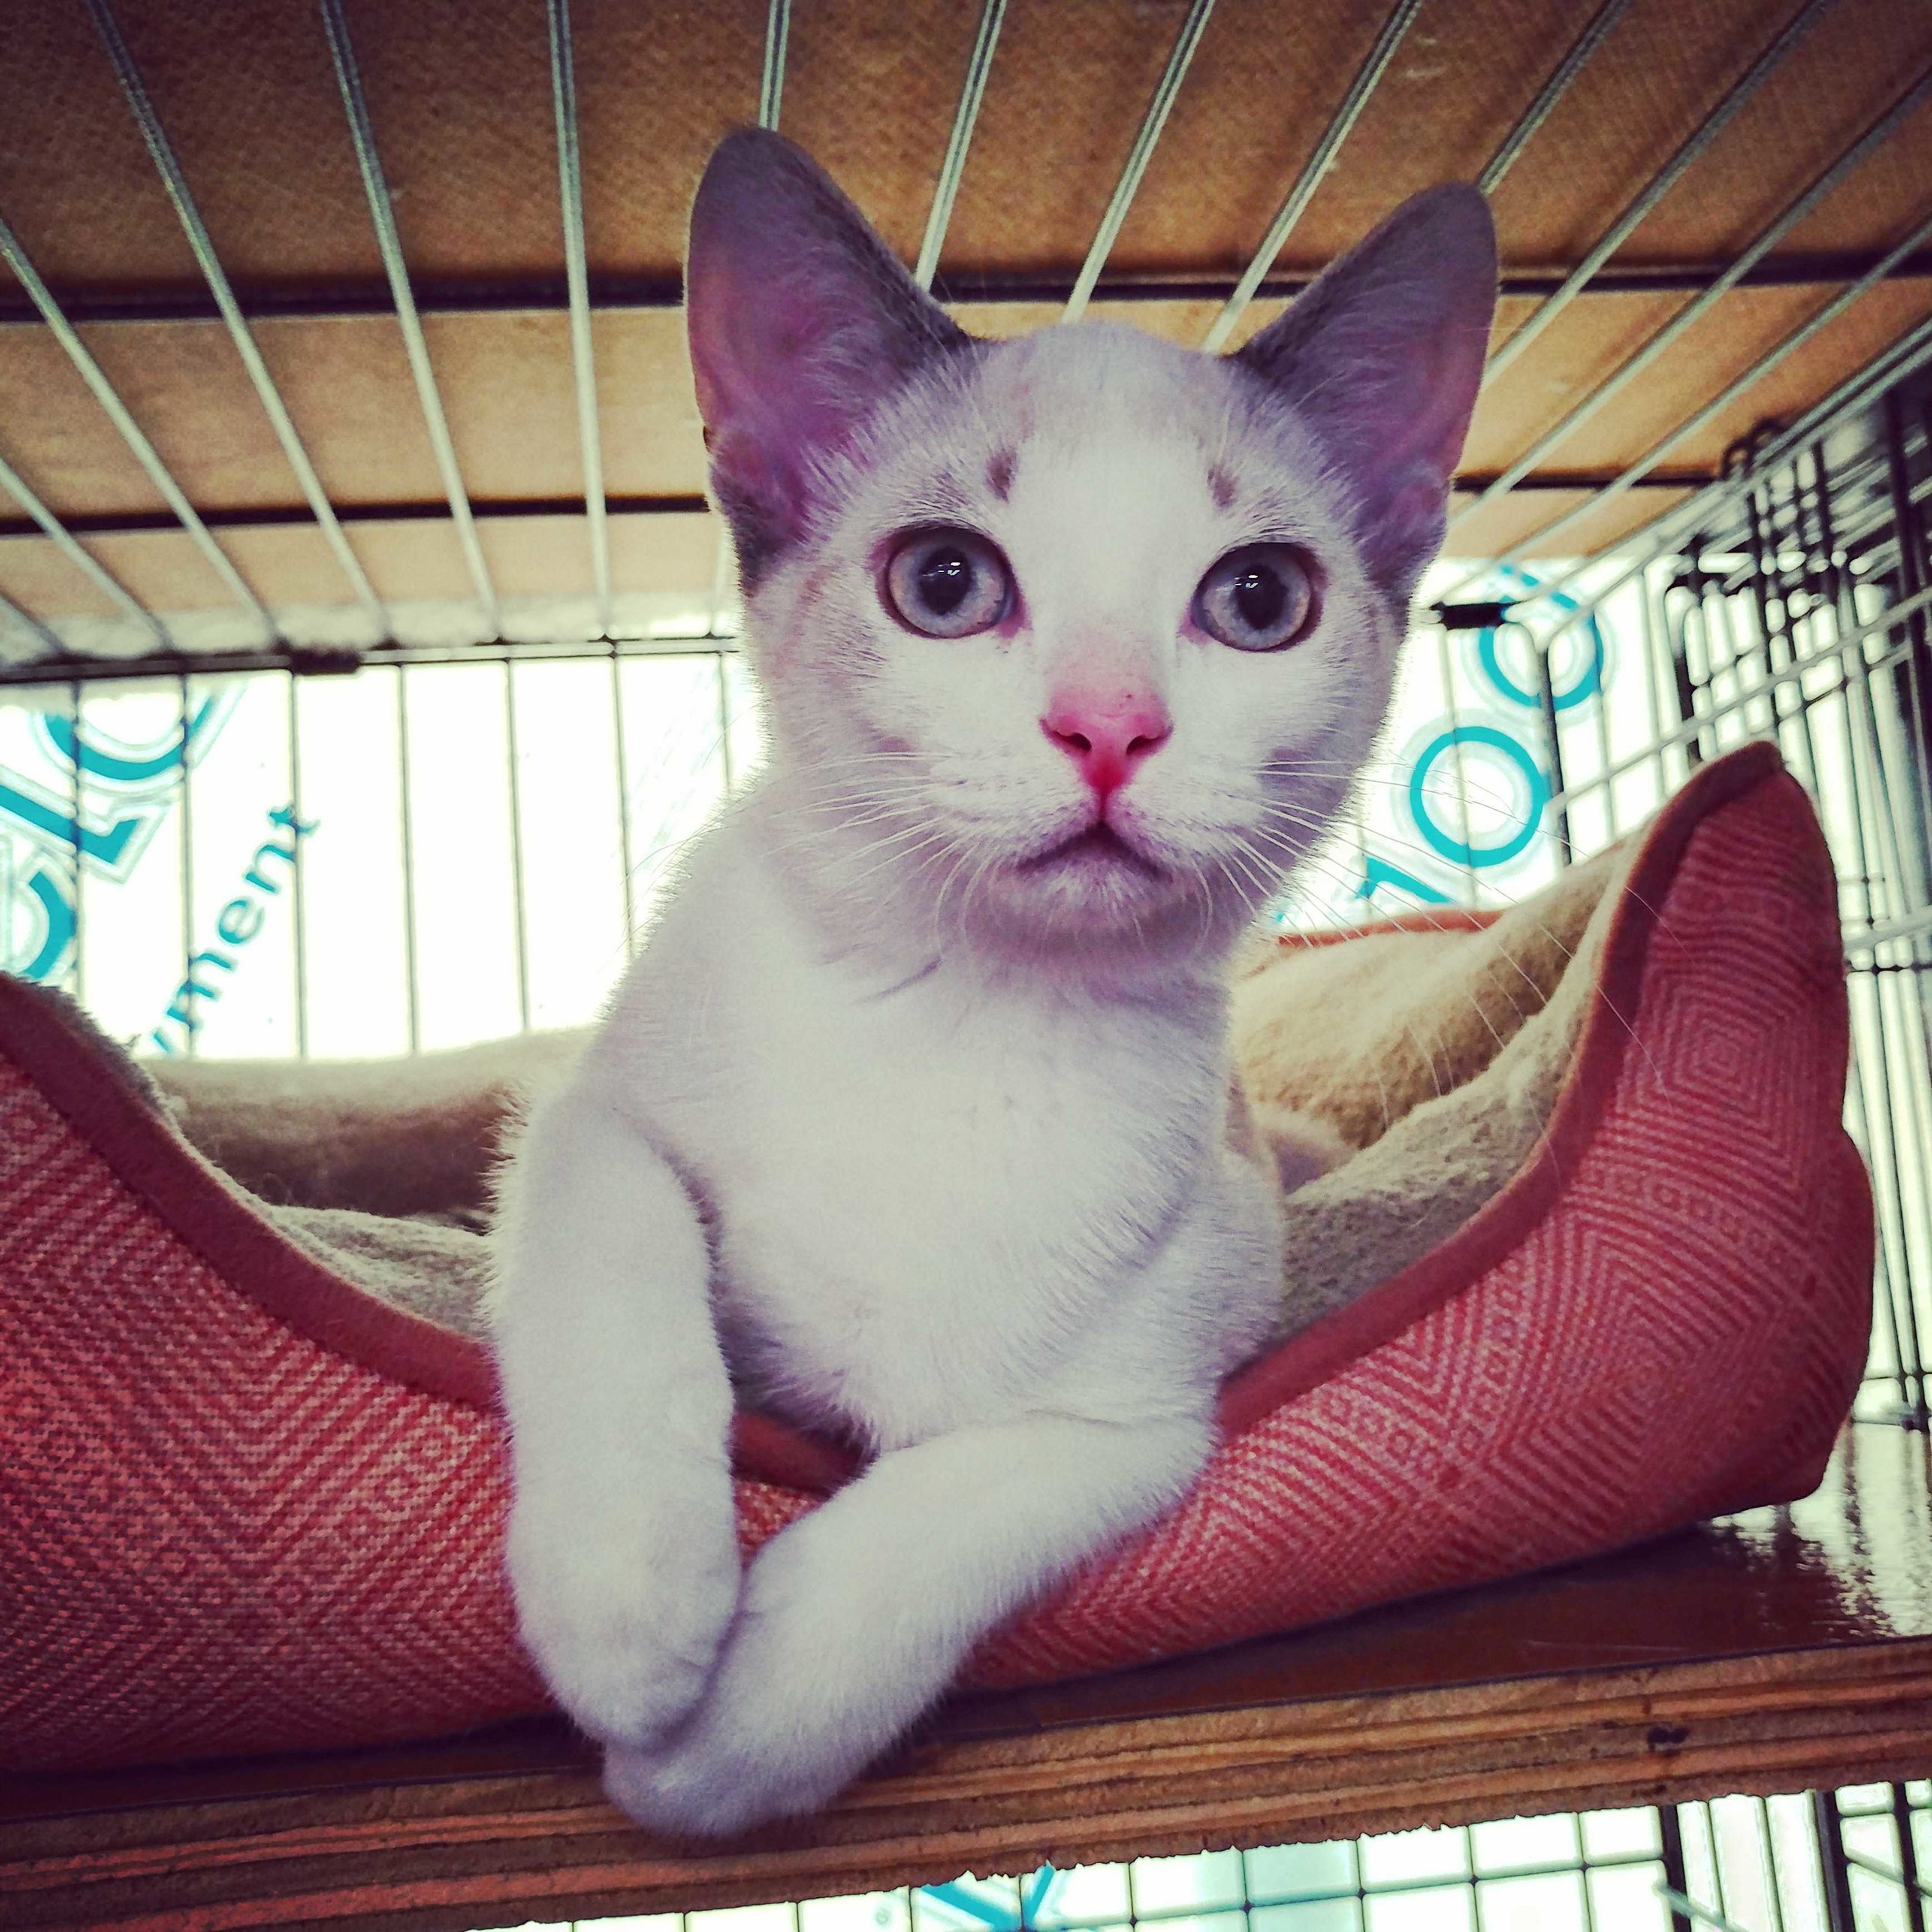 all about charlotte - Charlotte is a very sweet kitten who loves to be petted and play with her siblings.  She, her four siblings; Nellie, Fern, Itsie, Bitsie, and her mother Grace were found as friendly cats dumped at a feral colony site in Huntington, NY.  The kind feeder Amy called us for assistance.  We picked them up, provided medical care and fostered them all until they were ready for adoption.  Bitsie and Fern has been adopted already and now we'd like to find loving homes for the rest of the family.Charlotte can be visited at our habitats at Doggie Don's in East Northport.Born April 2019,Female,FIV/FELV negative,VaccinatedSpayed, andMicrochipped.